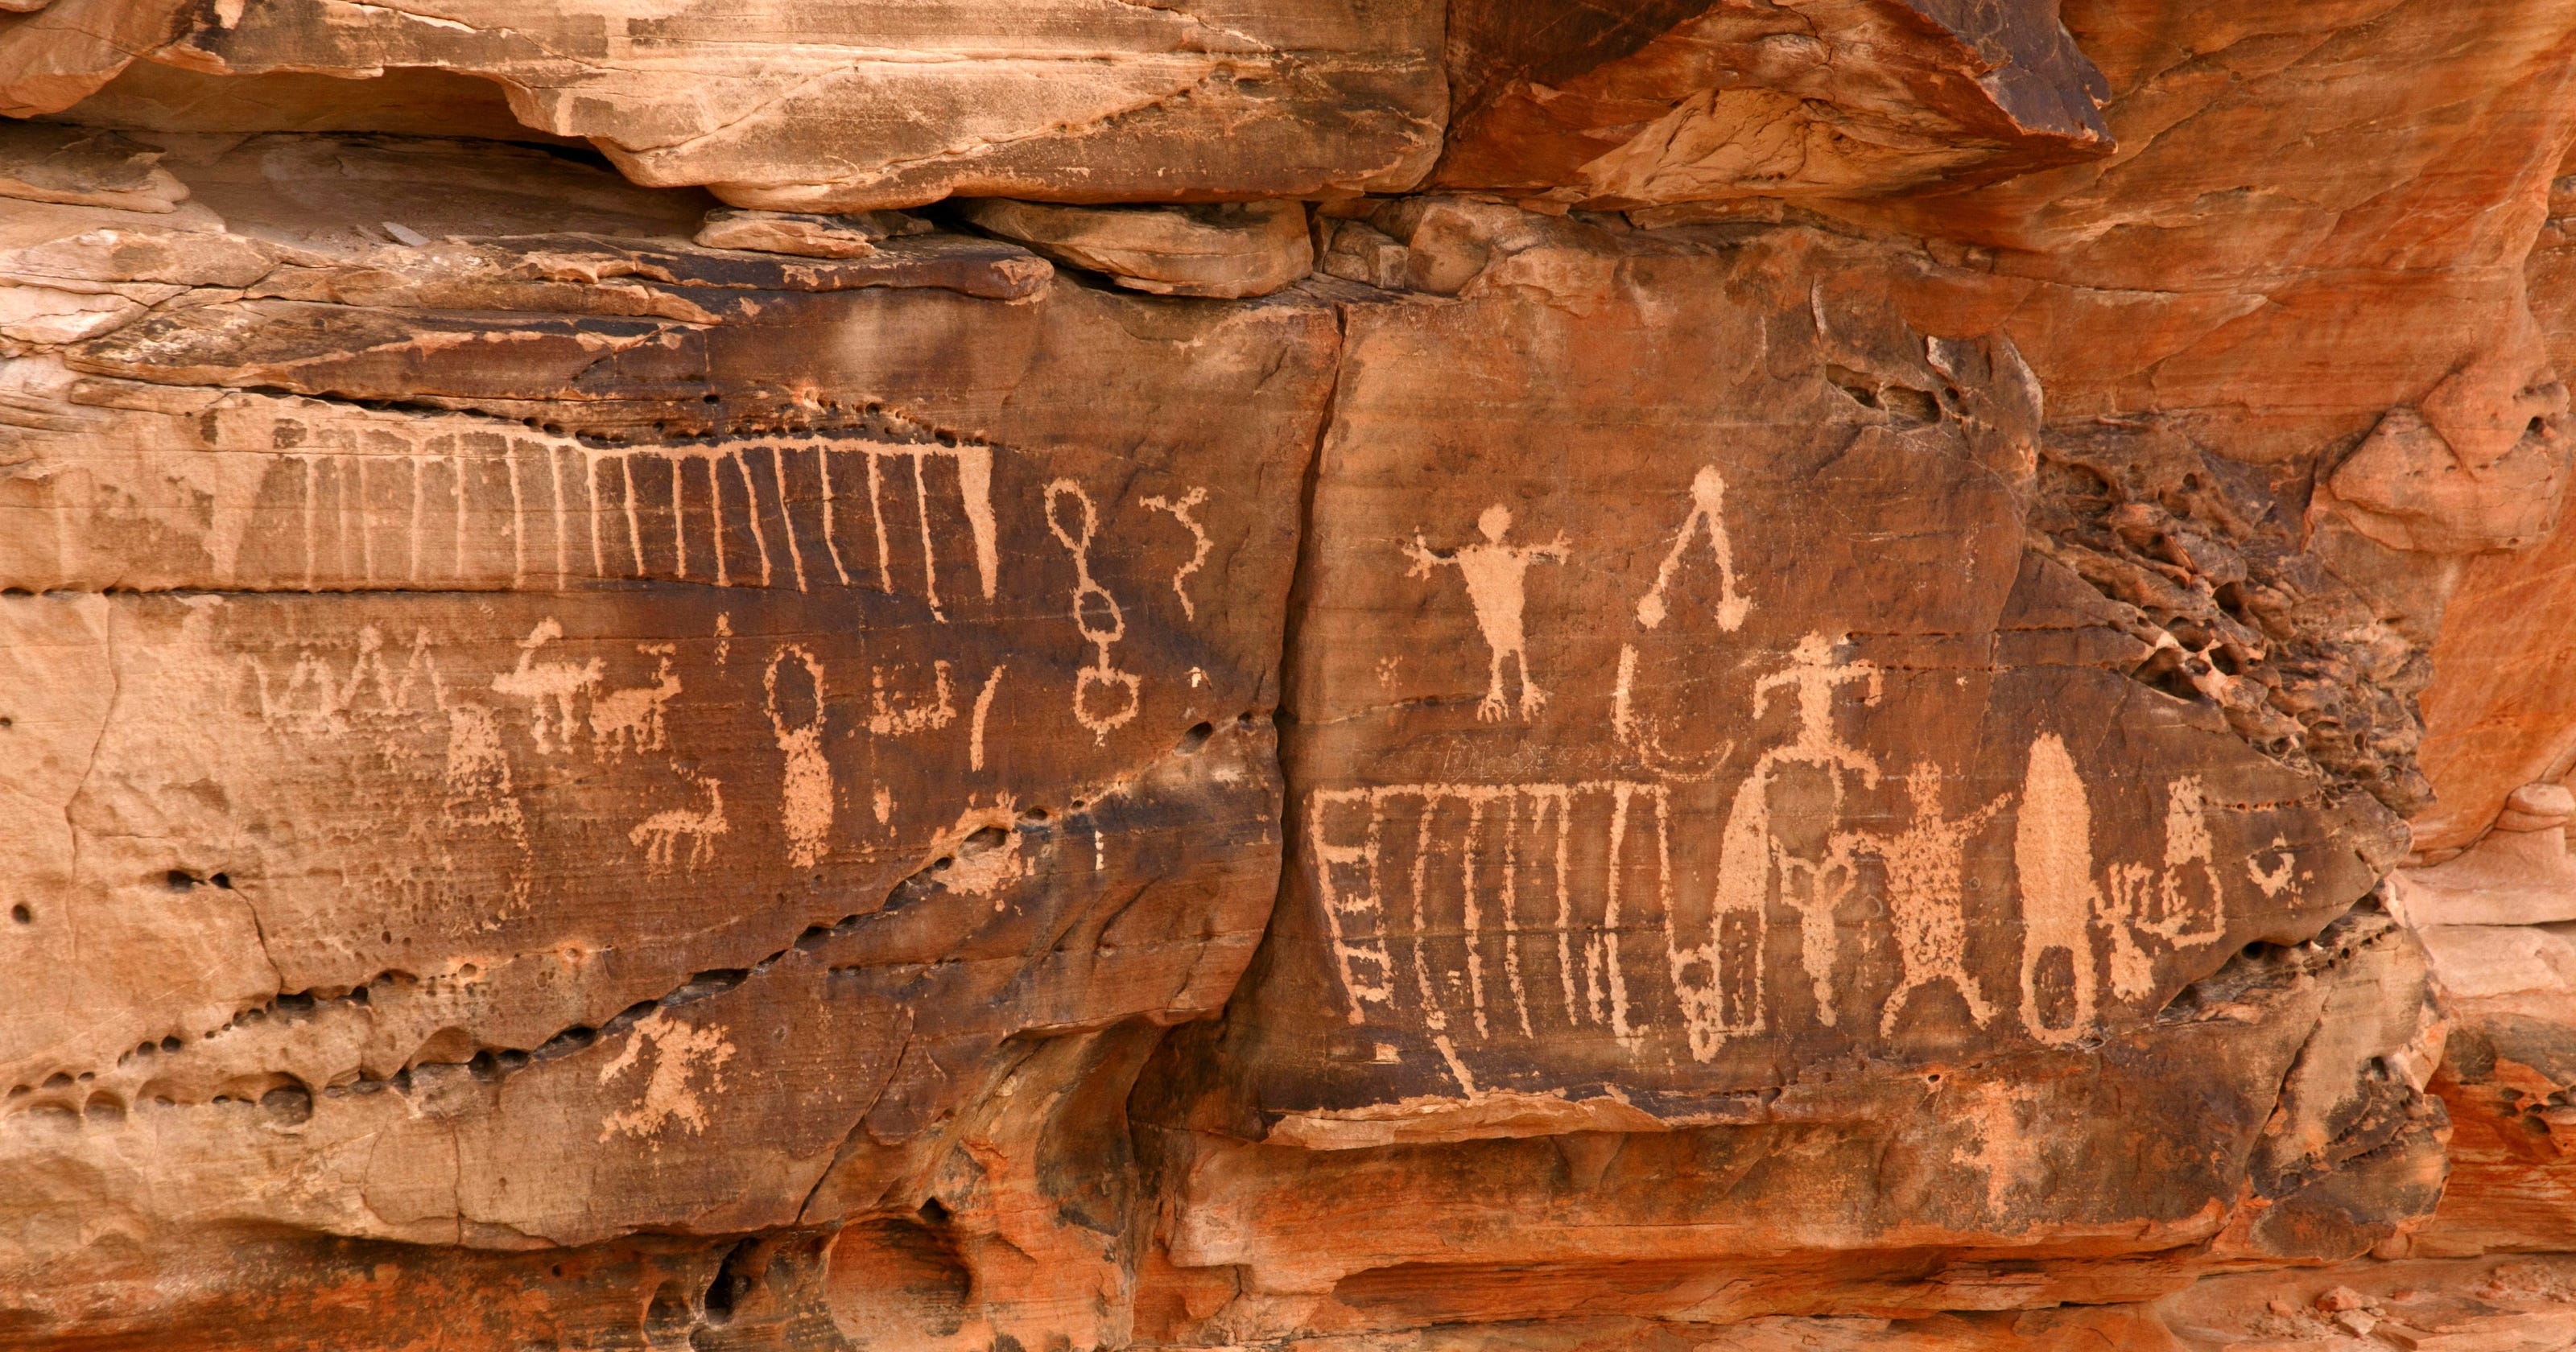 People have lived in Utah for 12,000 years or more, based on the